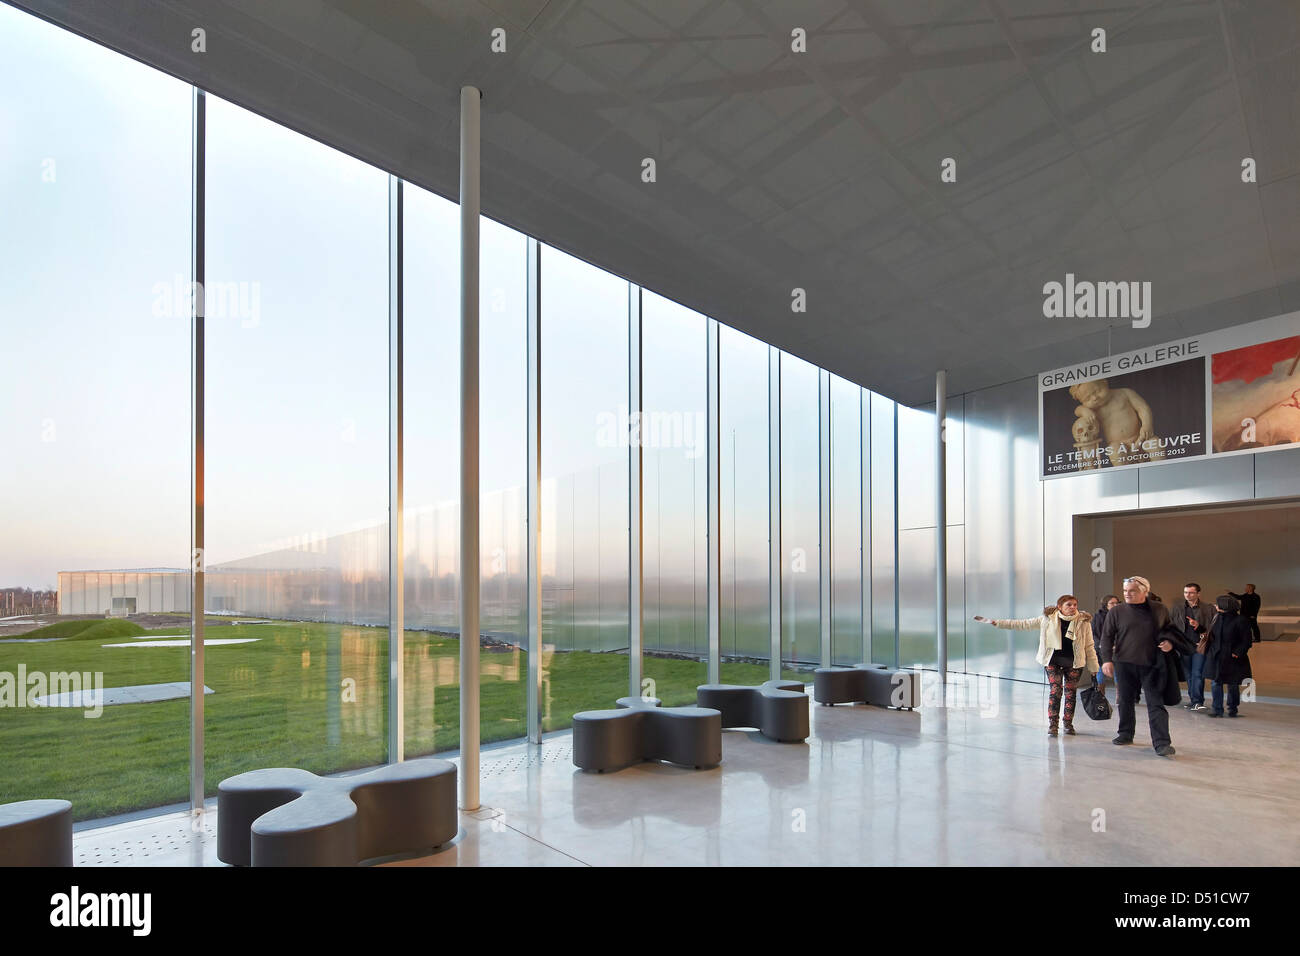 Musée Du Louvre  Lens, Lens, France. Architect: SANAA, 2012. Full-height glazing linking the interior with - Stock Image